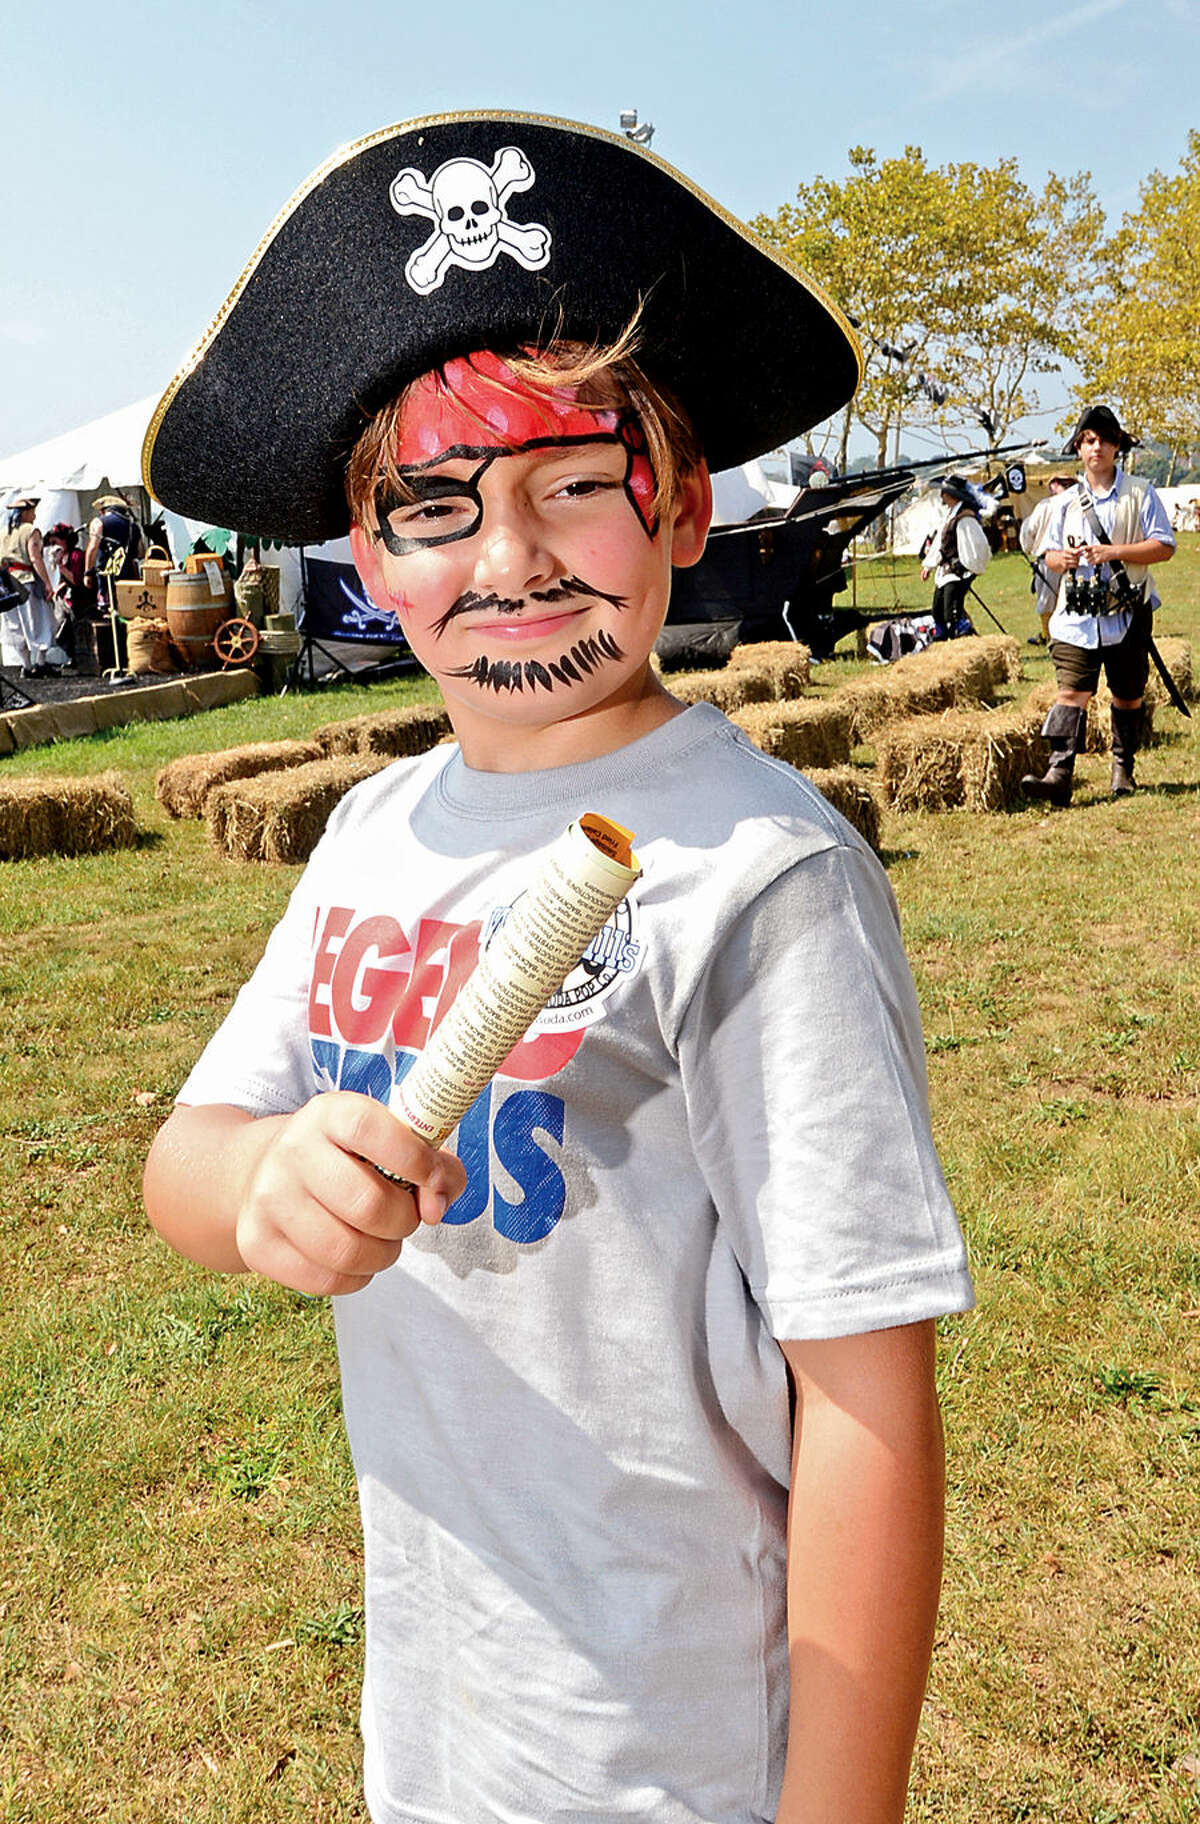 Hour photo / Erik Trautmann Gabe Cromley, 7, dresses up as a pirate for the Norwalk Seaport Association's 37th annual Oyster Festival at Veteran's Park Saturday.